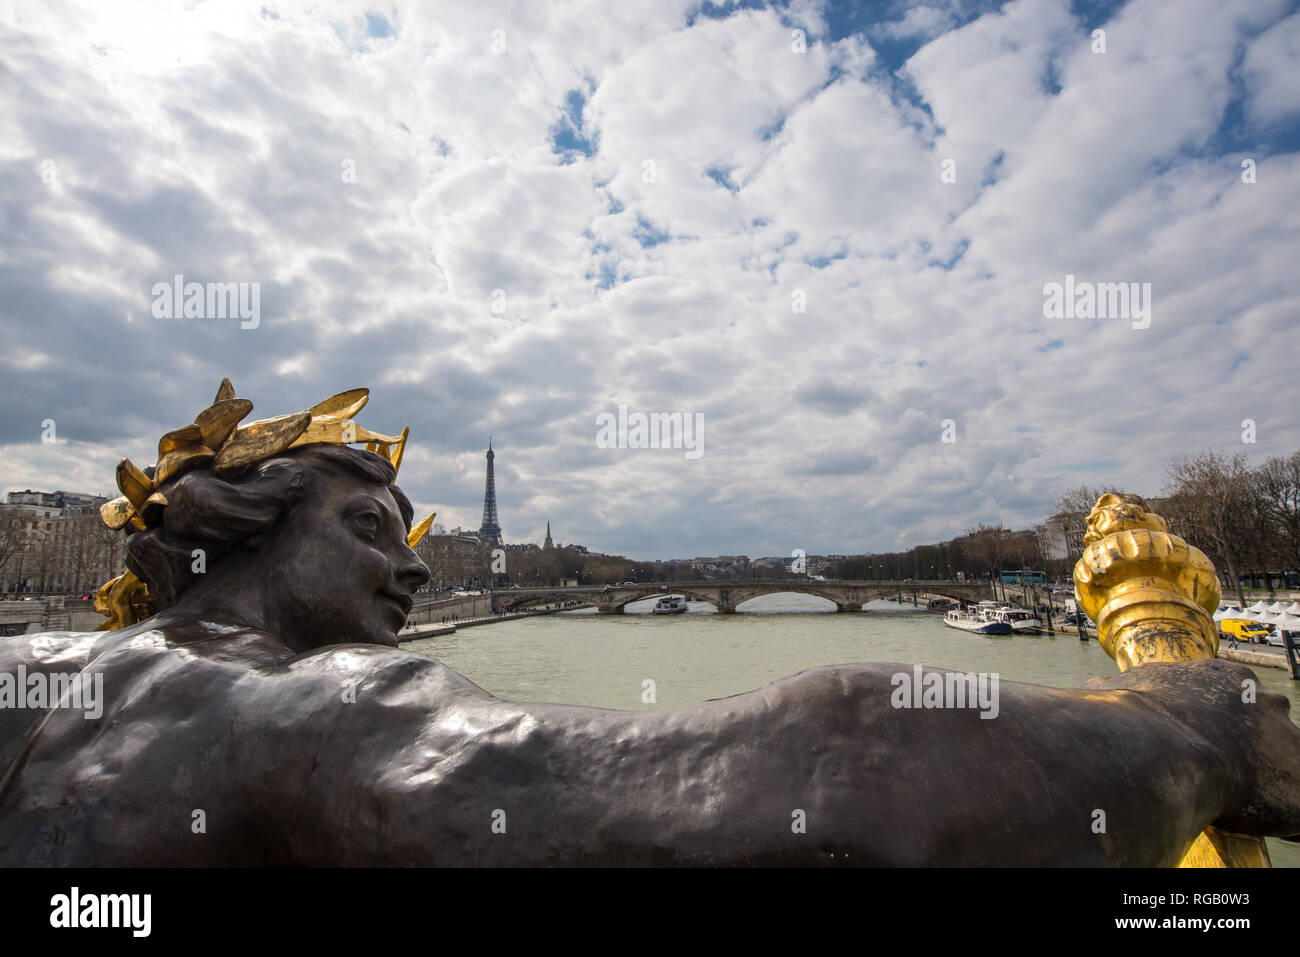 Antique statue on bridge Alexandre III, the river Seine and the Eiffel tower, Paris, France - Stock Image